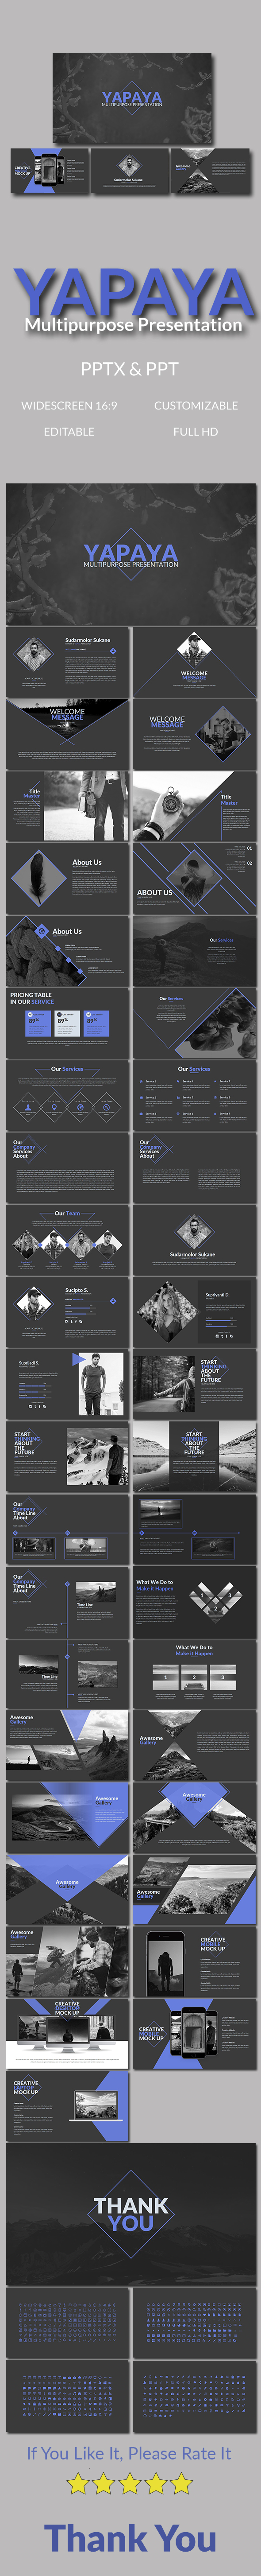 Yapaya Multipurpose Presentation - Abstract PowerPoint Templates